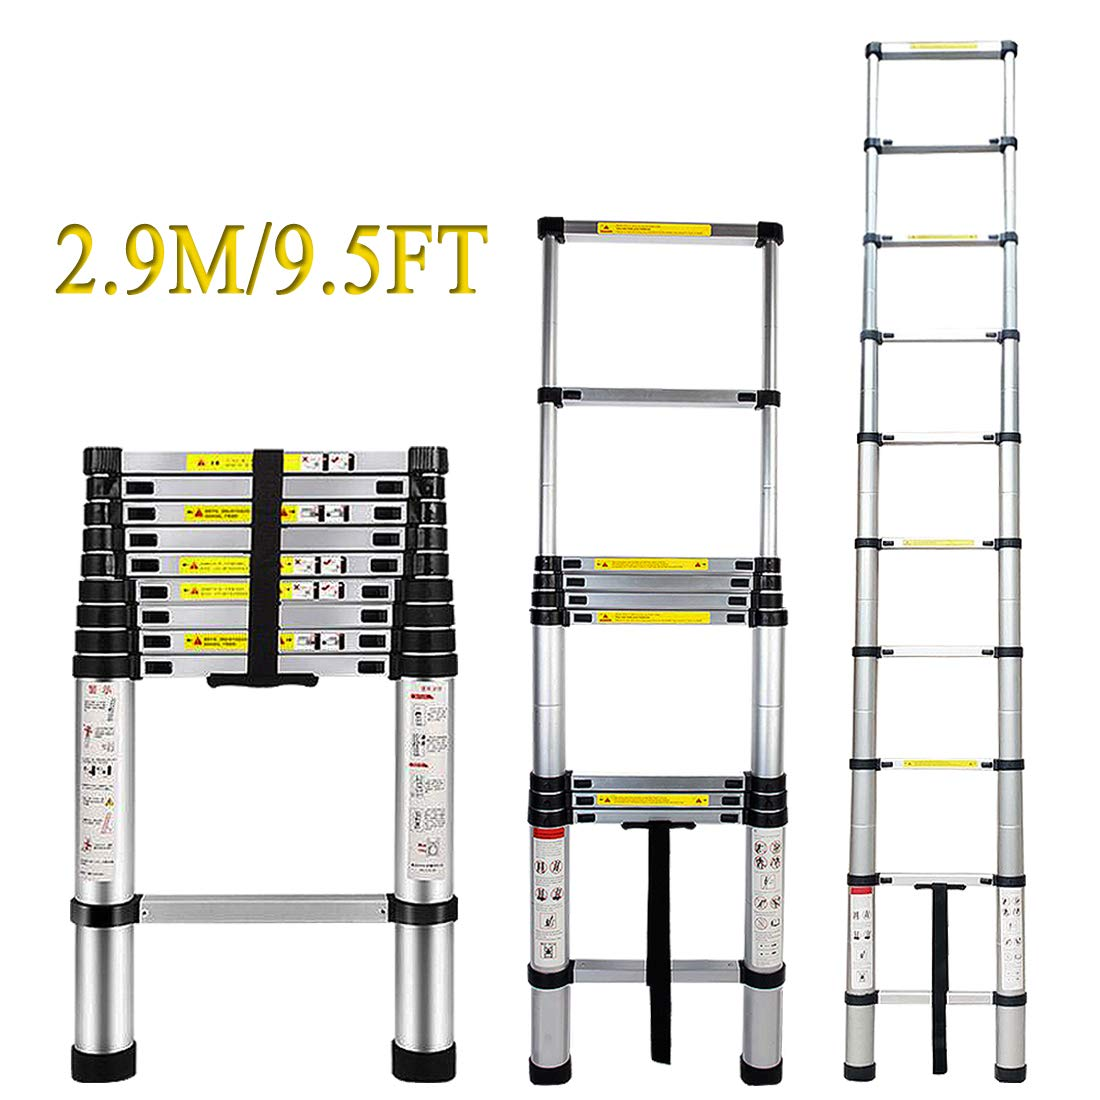 Telescoping Extension Ladder - ARCHOM Aluminum Telescopic Ladder 9.5ft Extend Ladder Multi-Purpose Portable Lightweight Folding Ladder with EN131 and CE Standard 330 Pound Capacity